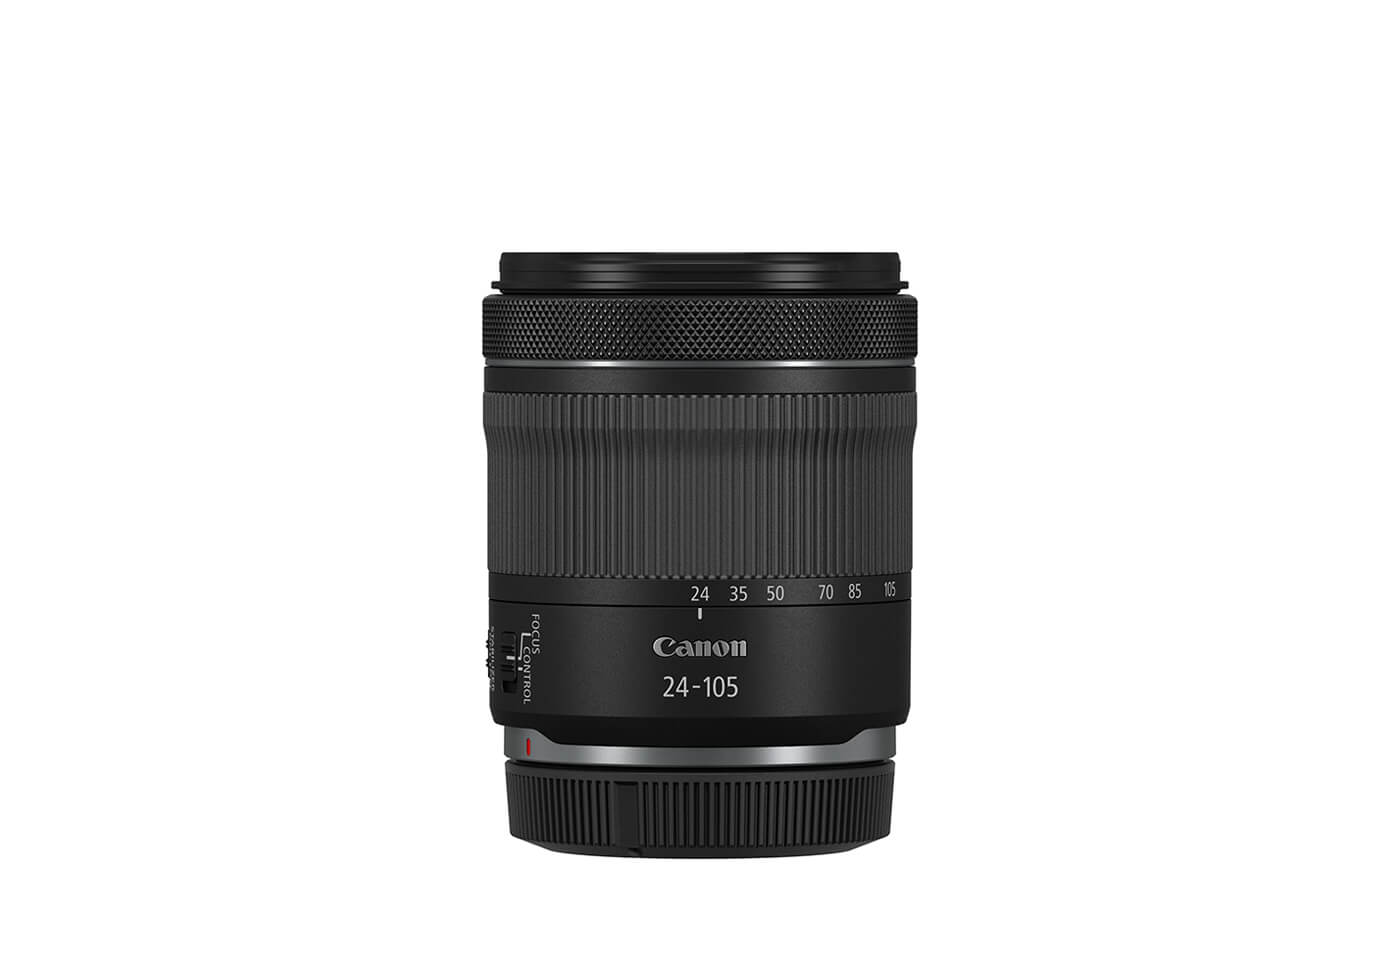 RF 24-105mm f/4-7.1 IS STM side with cap